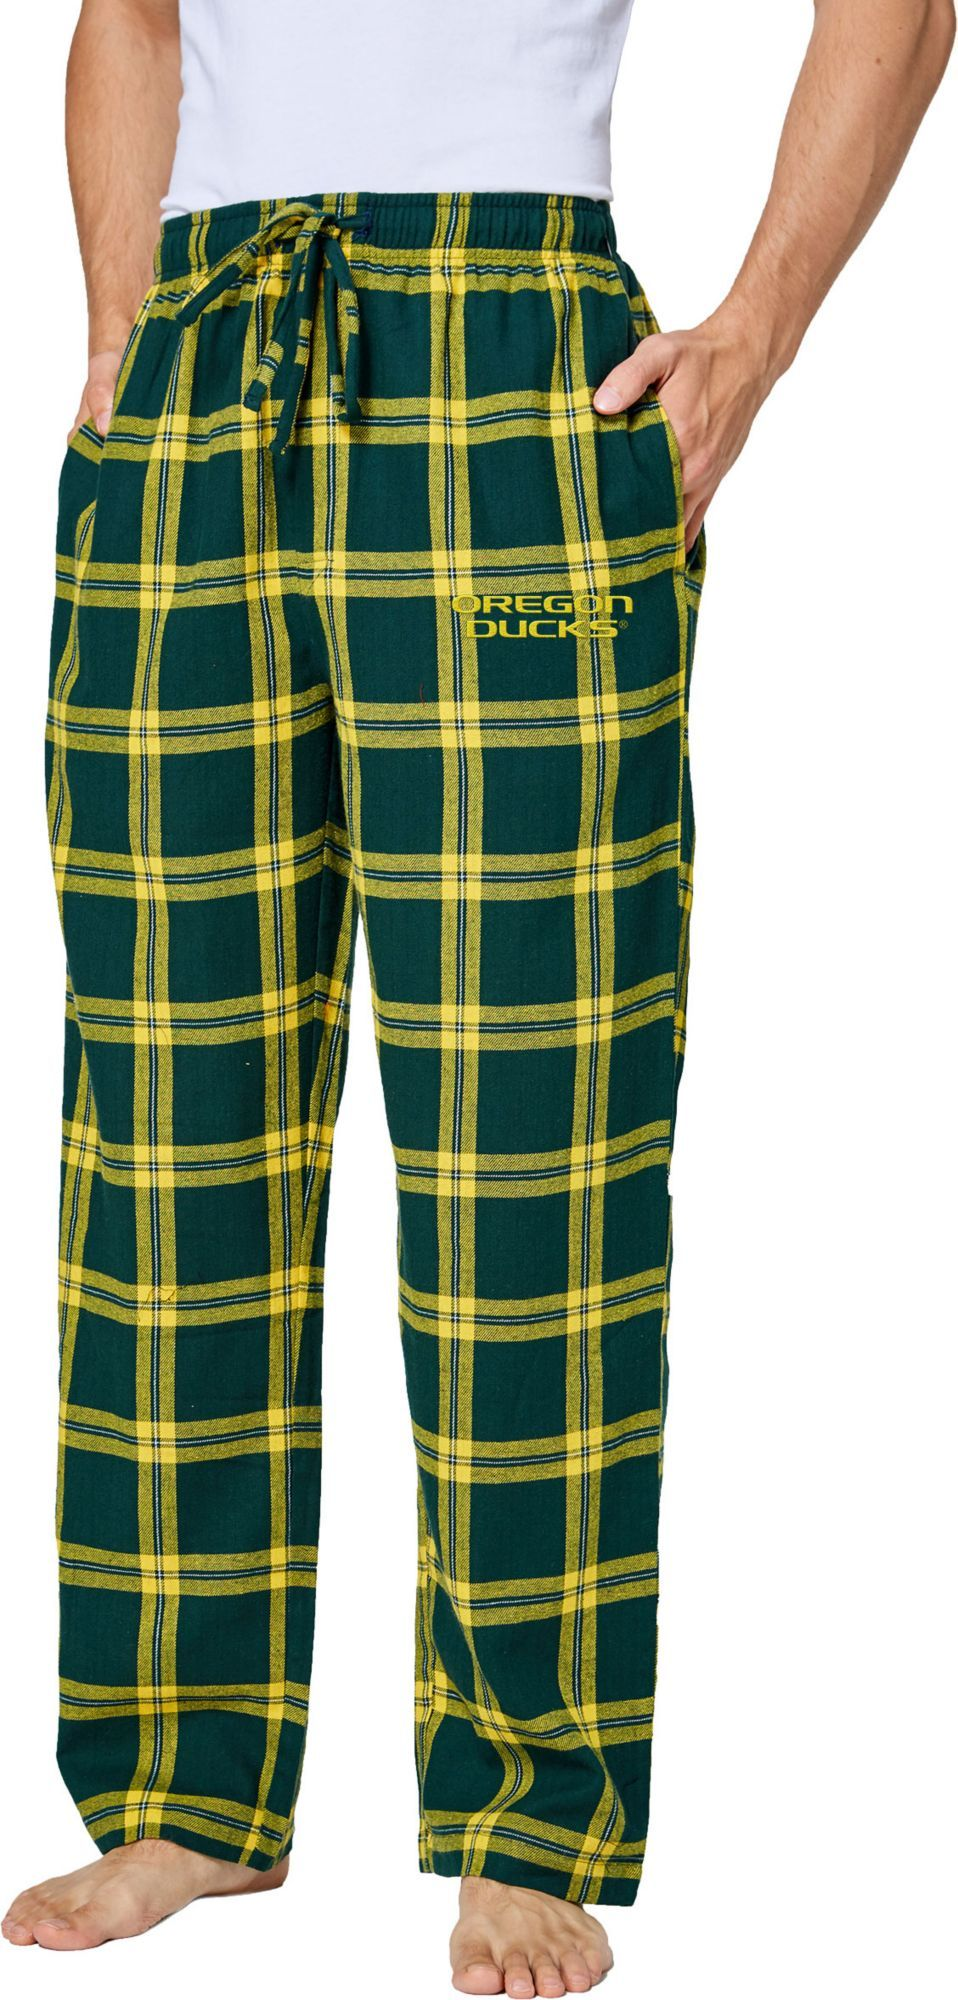 Oregon ducks flannal pj bottoms